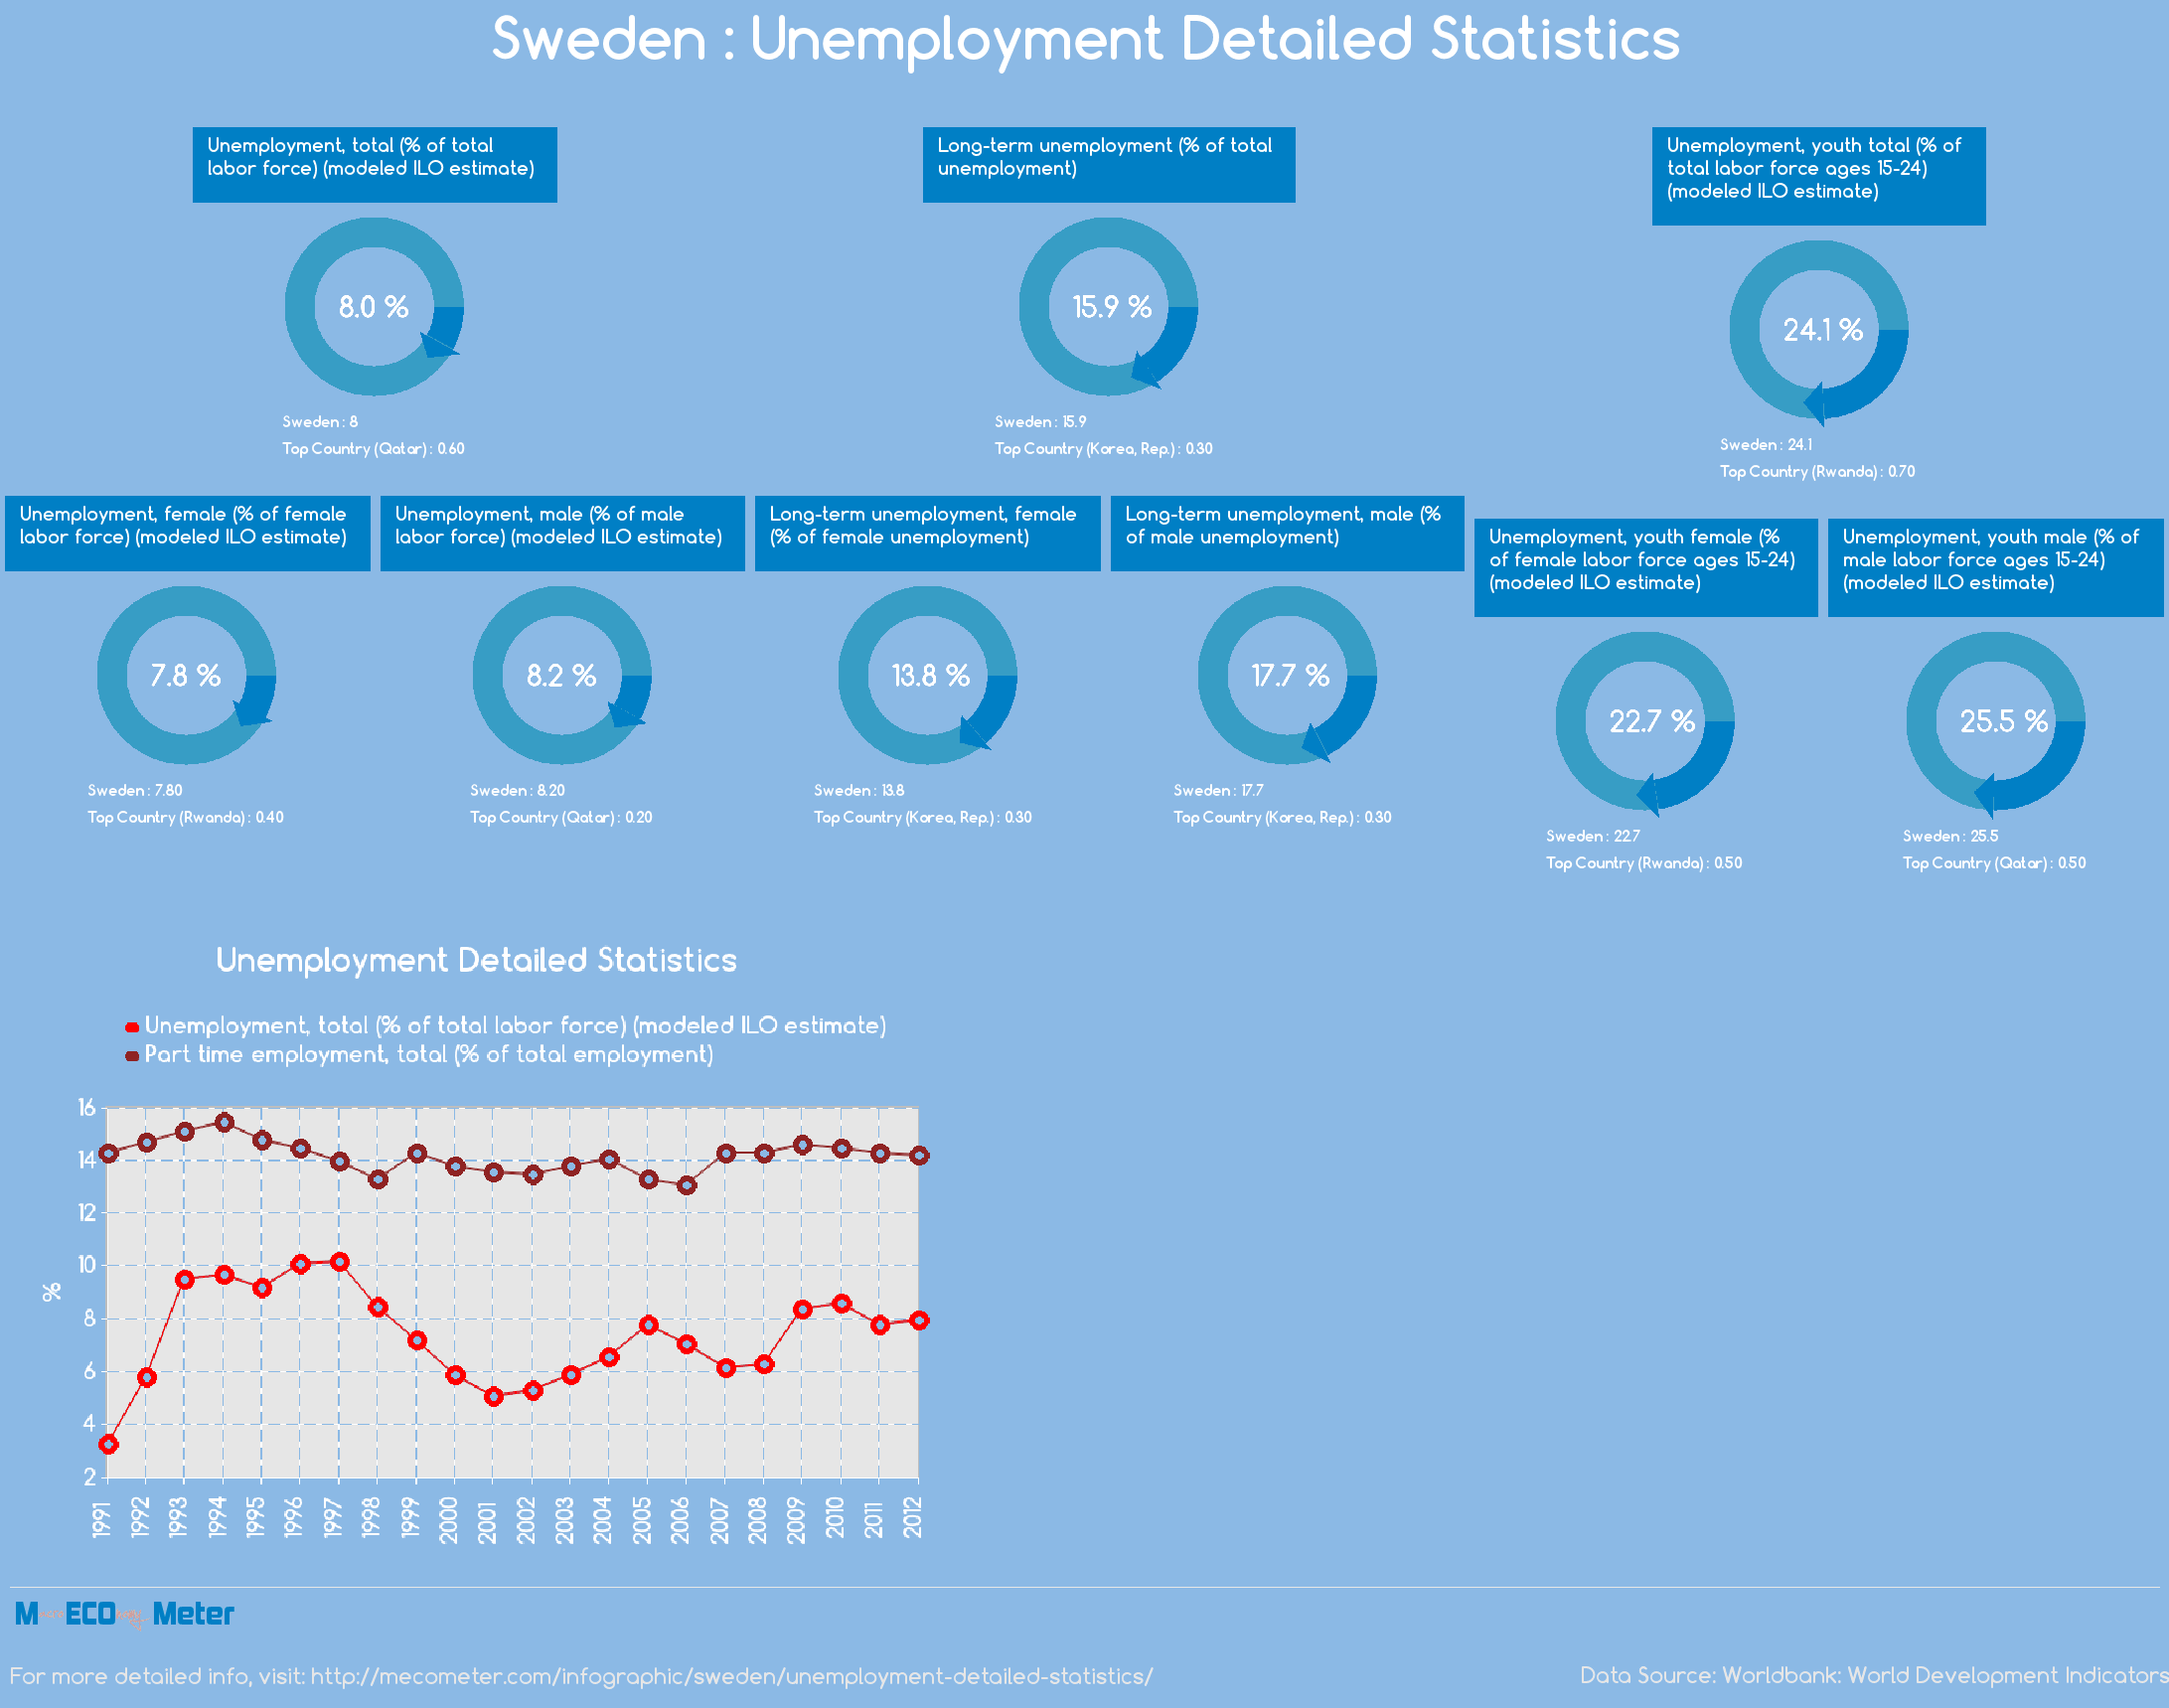 Sweden : Unemployment Detailed Statistics